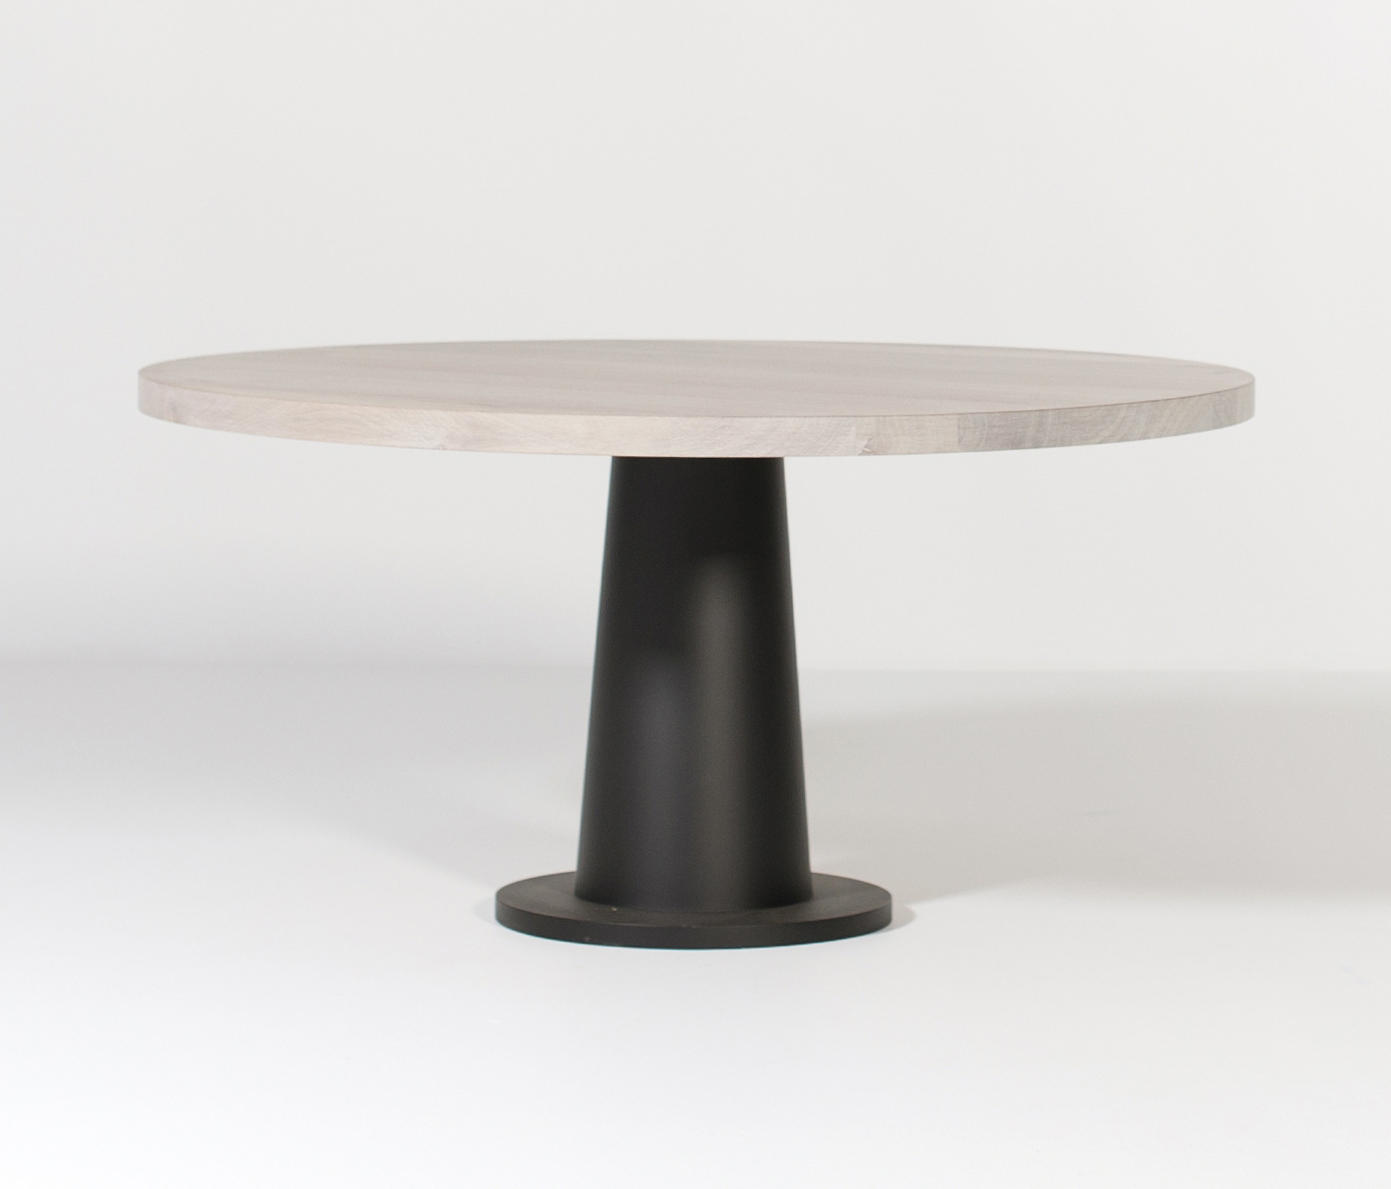 KOPS DINING TABLE ROUND METAL BASE Dining tables from